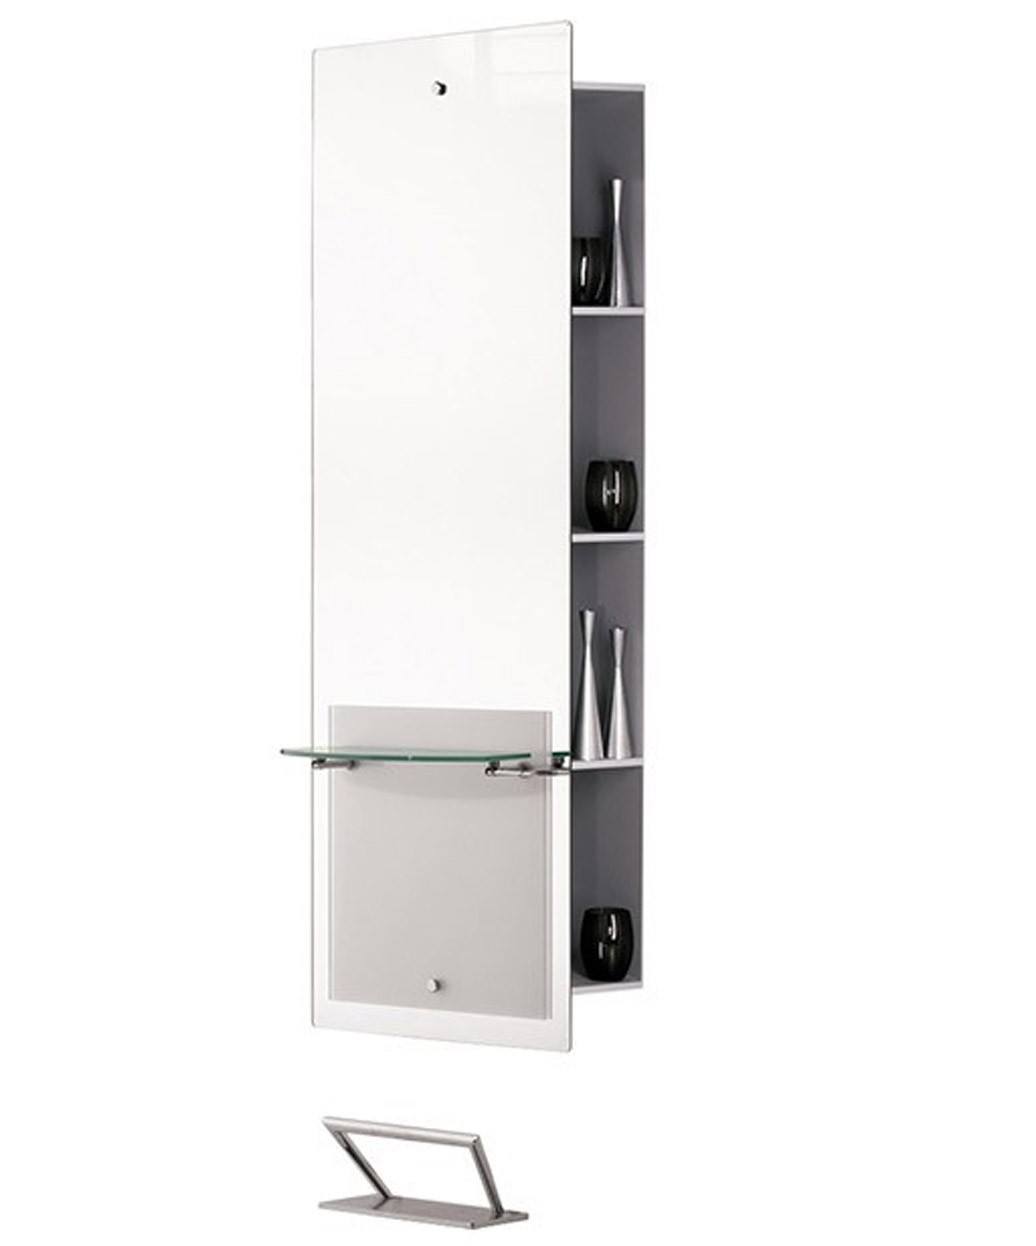 MI020 Lisboa Mirror Styling Station with Storage